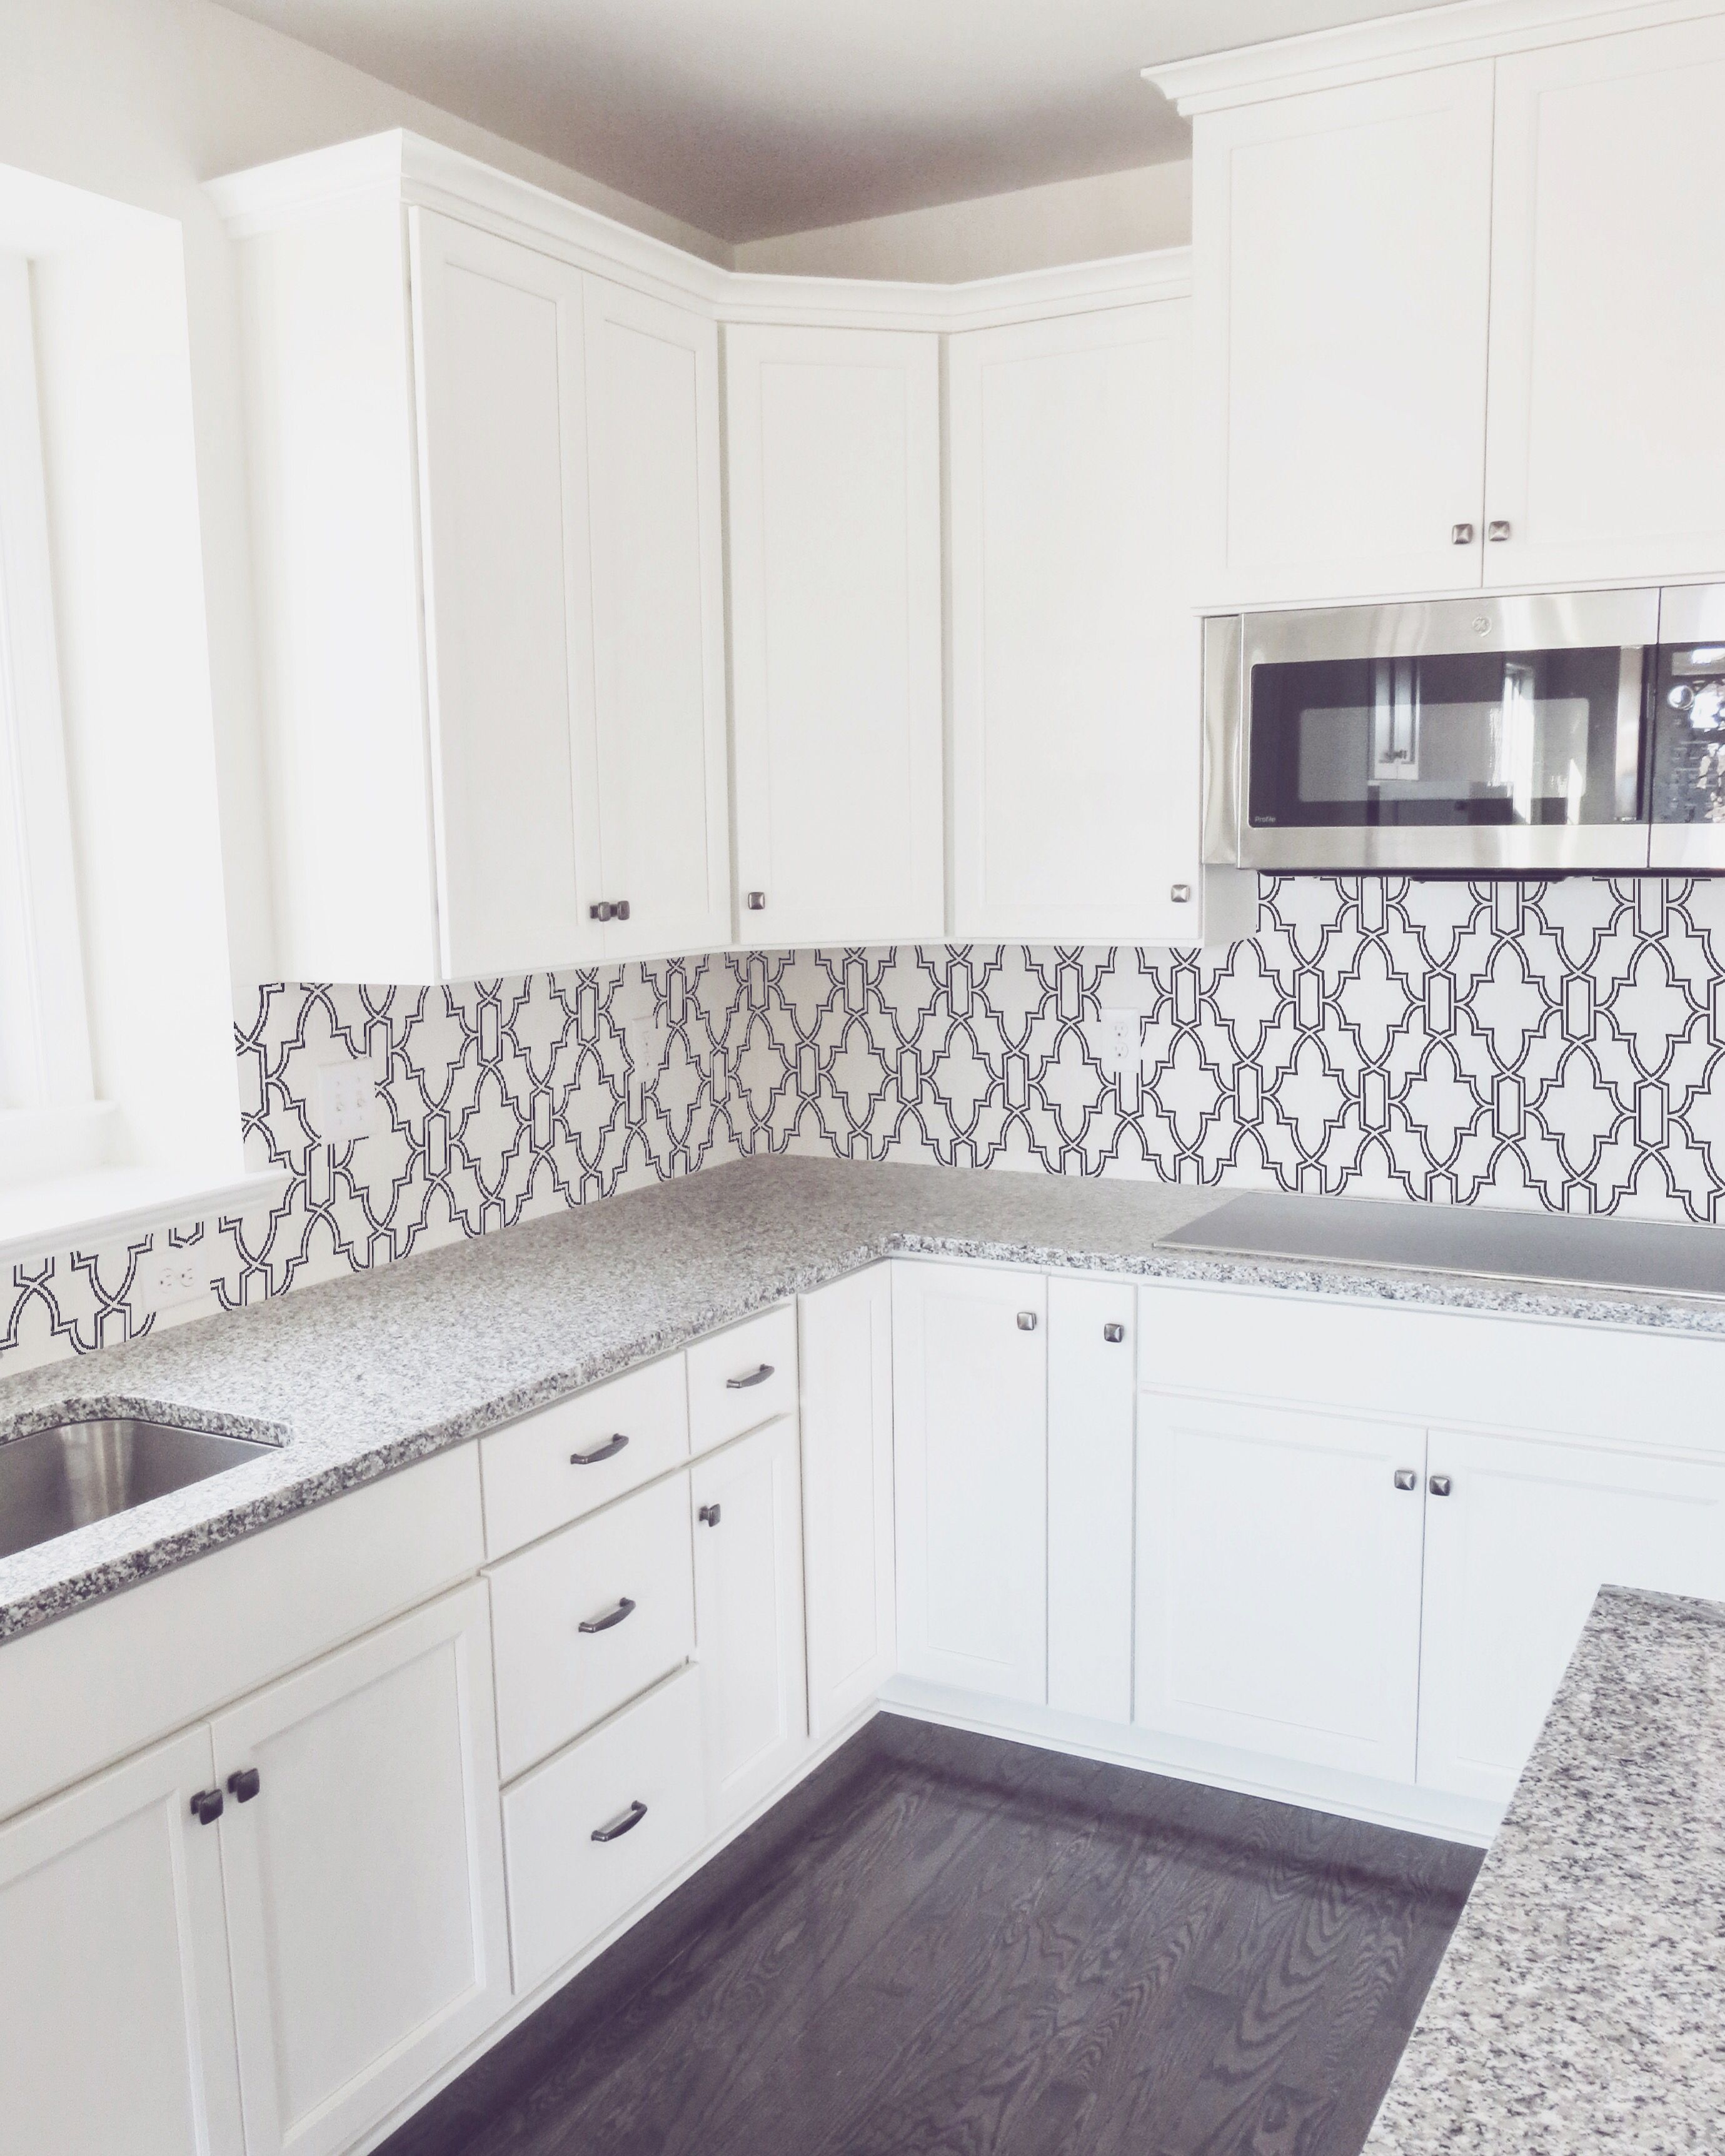 Kitchen Backsplash Peel And Stick Removable Wallpaper Kitchen Kitchen Wallpaper Kitchen Backsplash